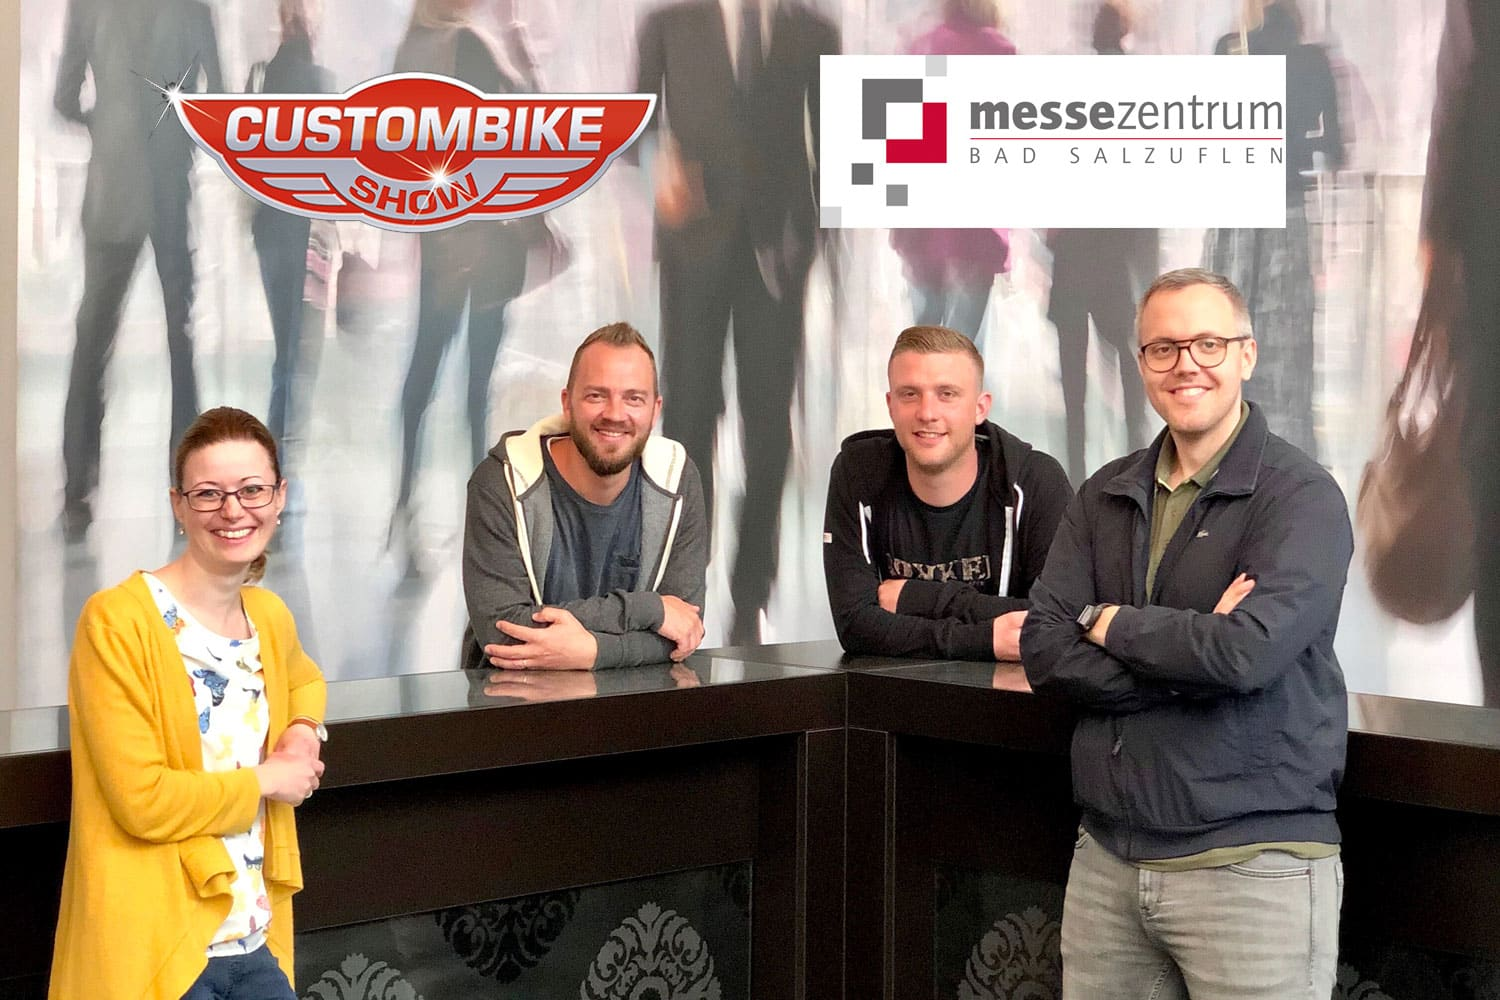 Custombike Show 2020 MesseZentrum